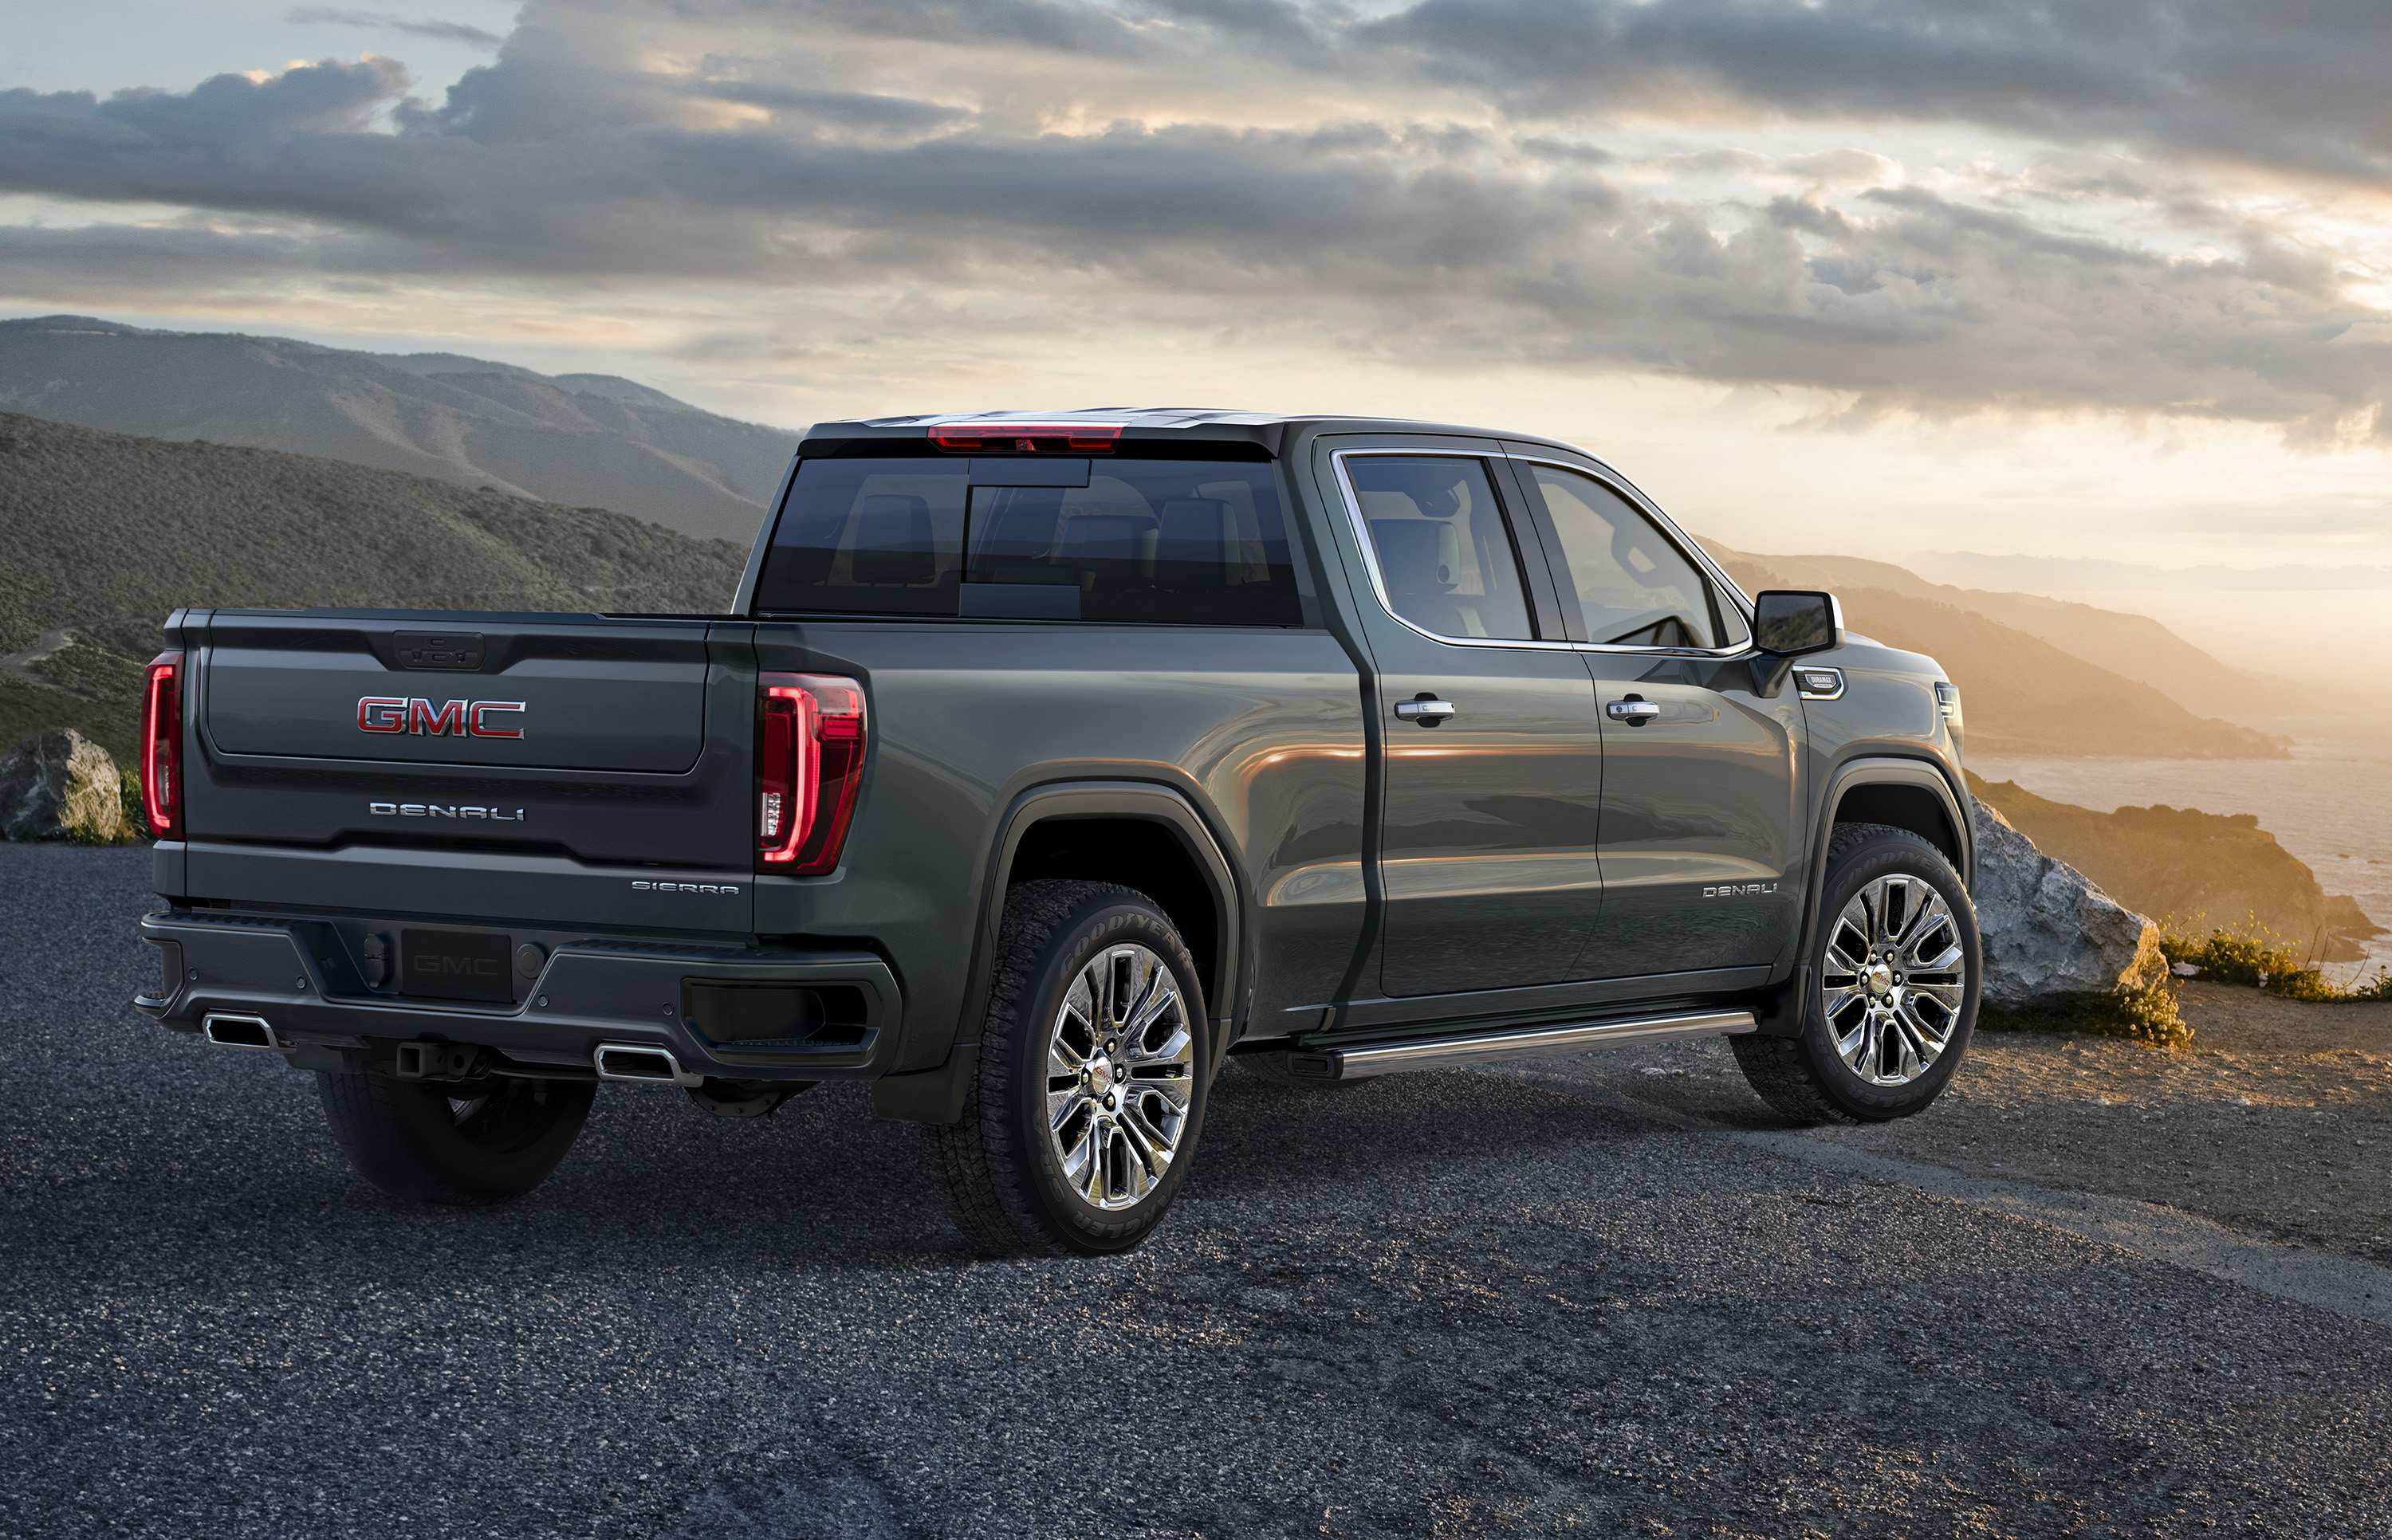 59 New 2019 Gmc 3 0 Diesel Specs Price And Release Date